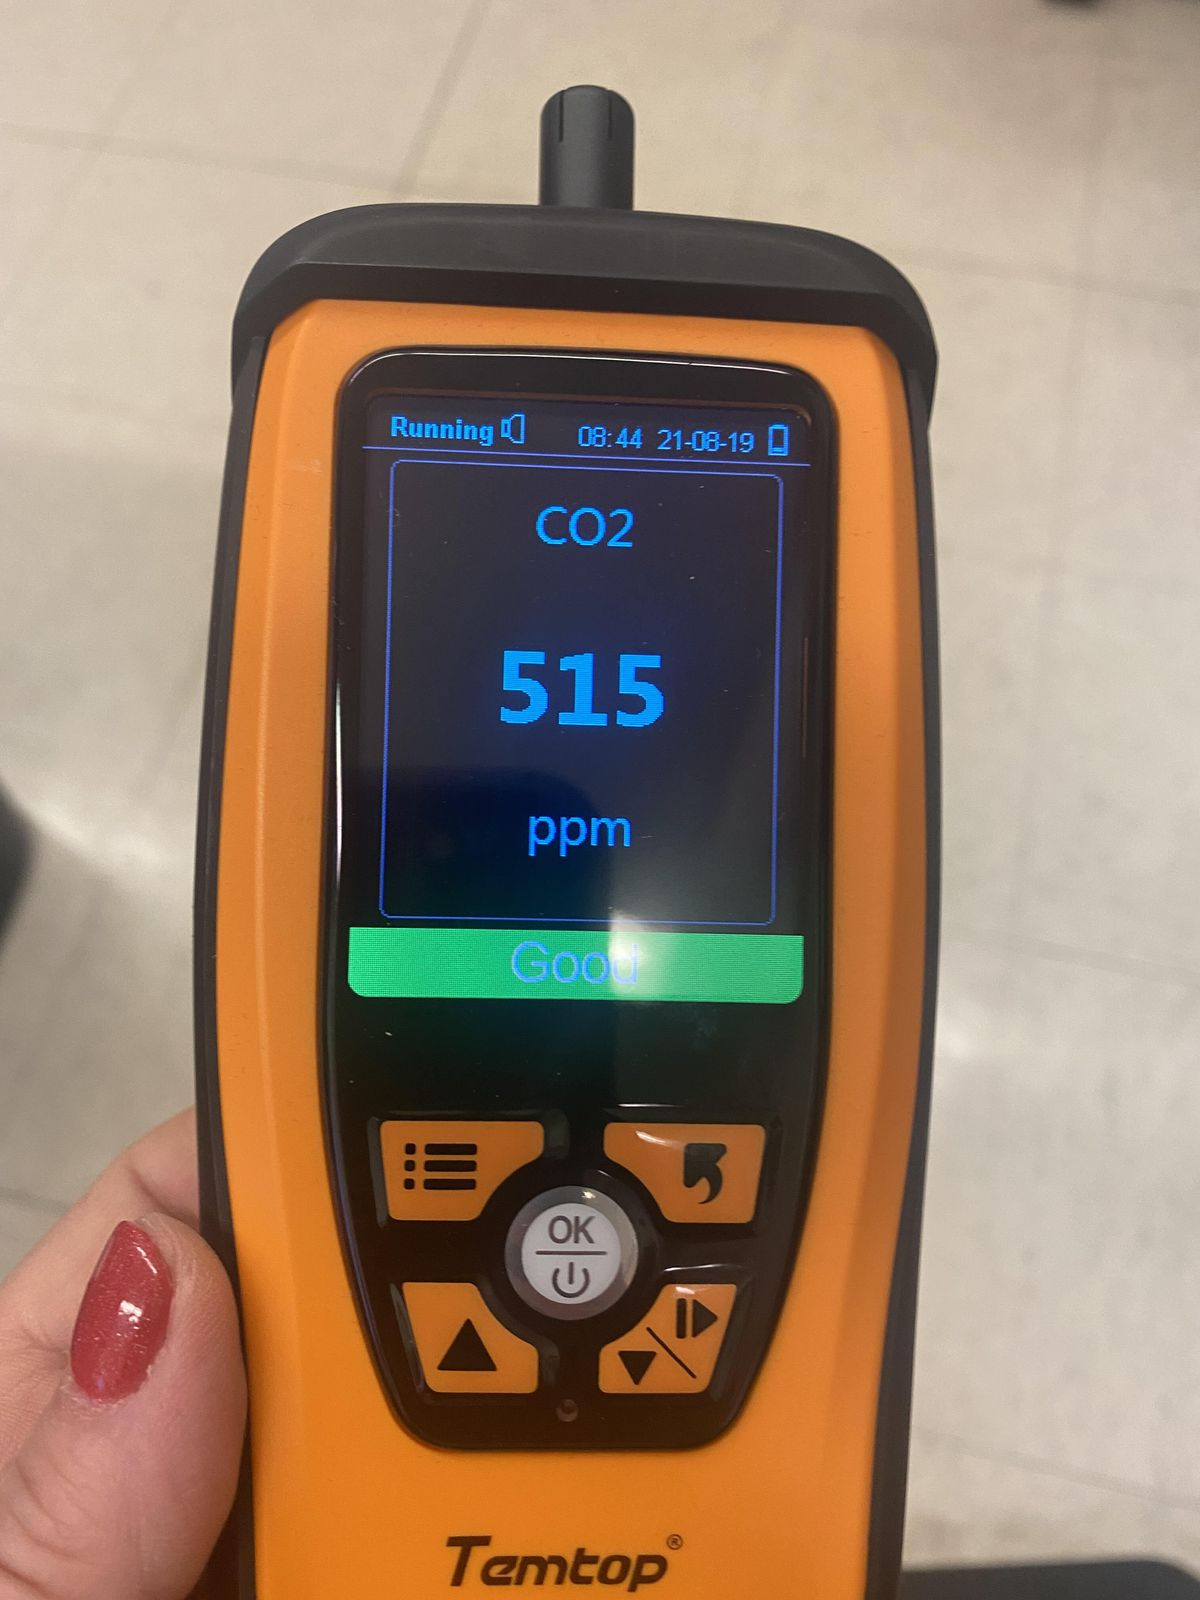 The education department sent carbon dioxide meters like this one to all schools.